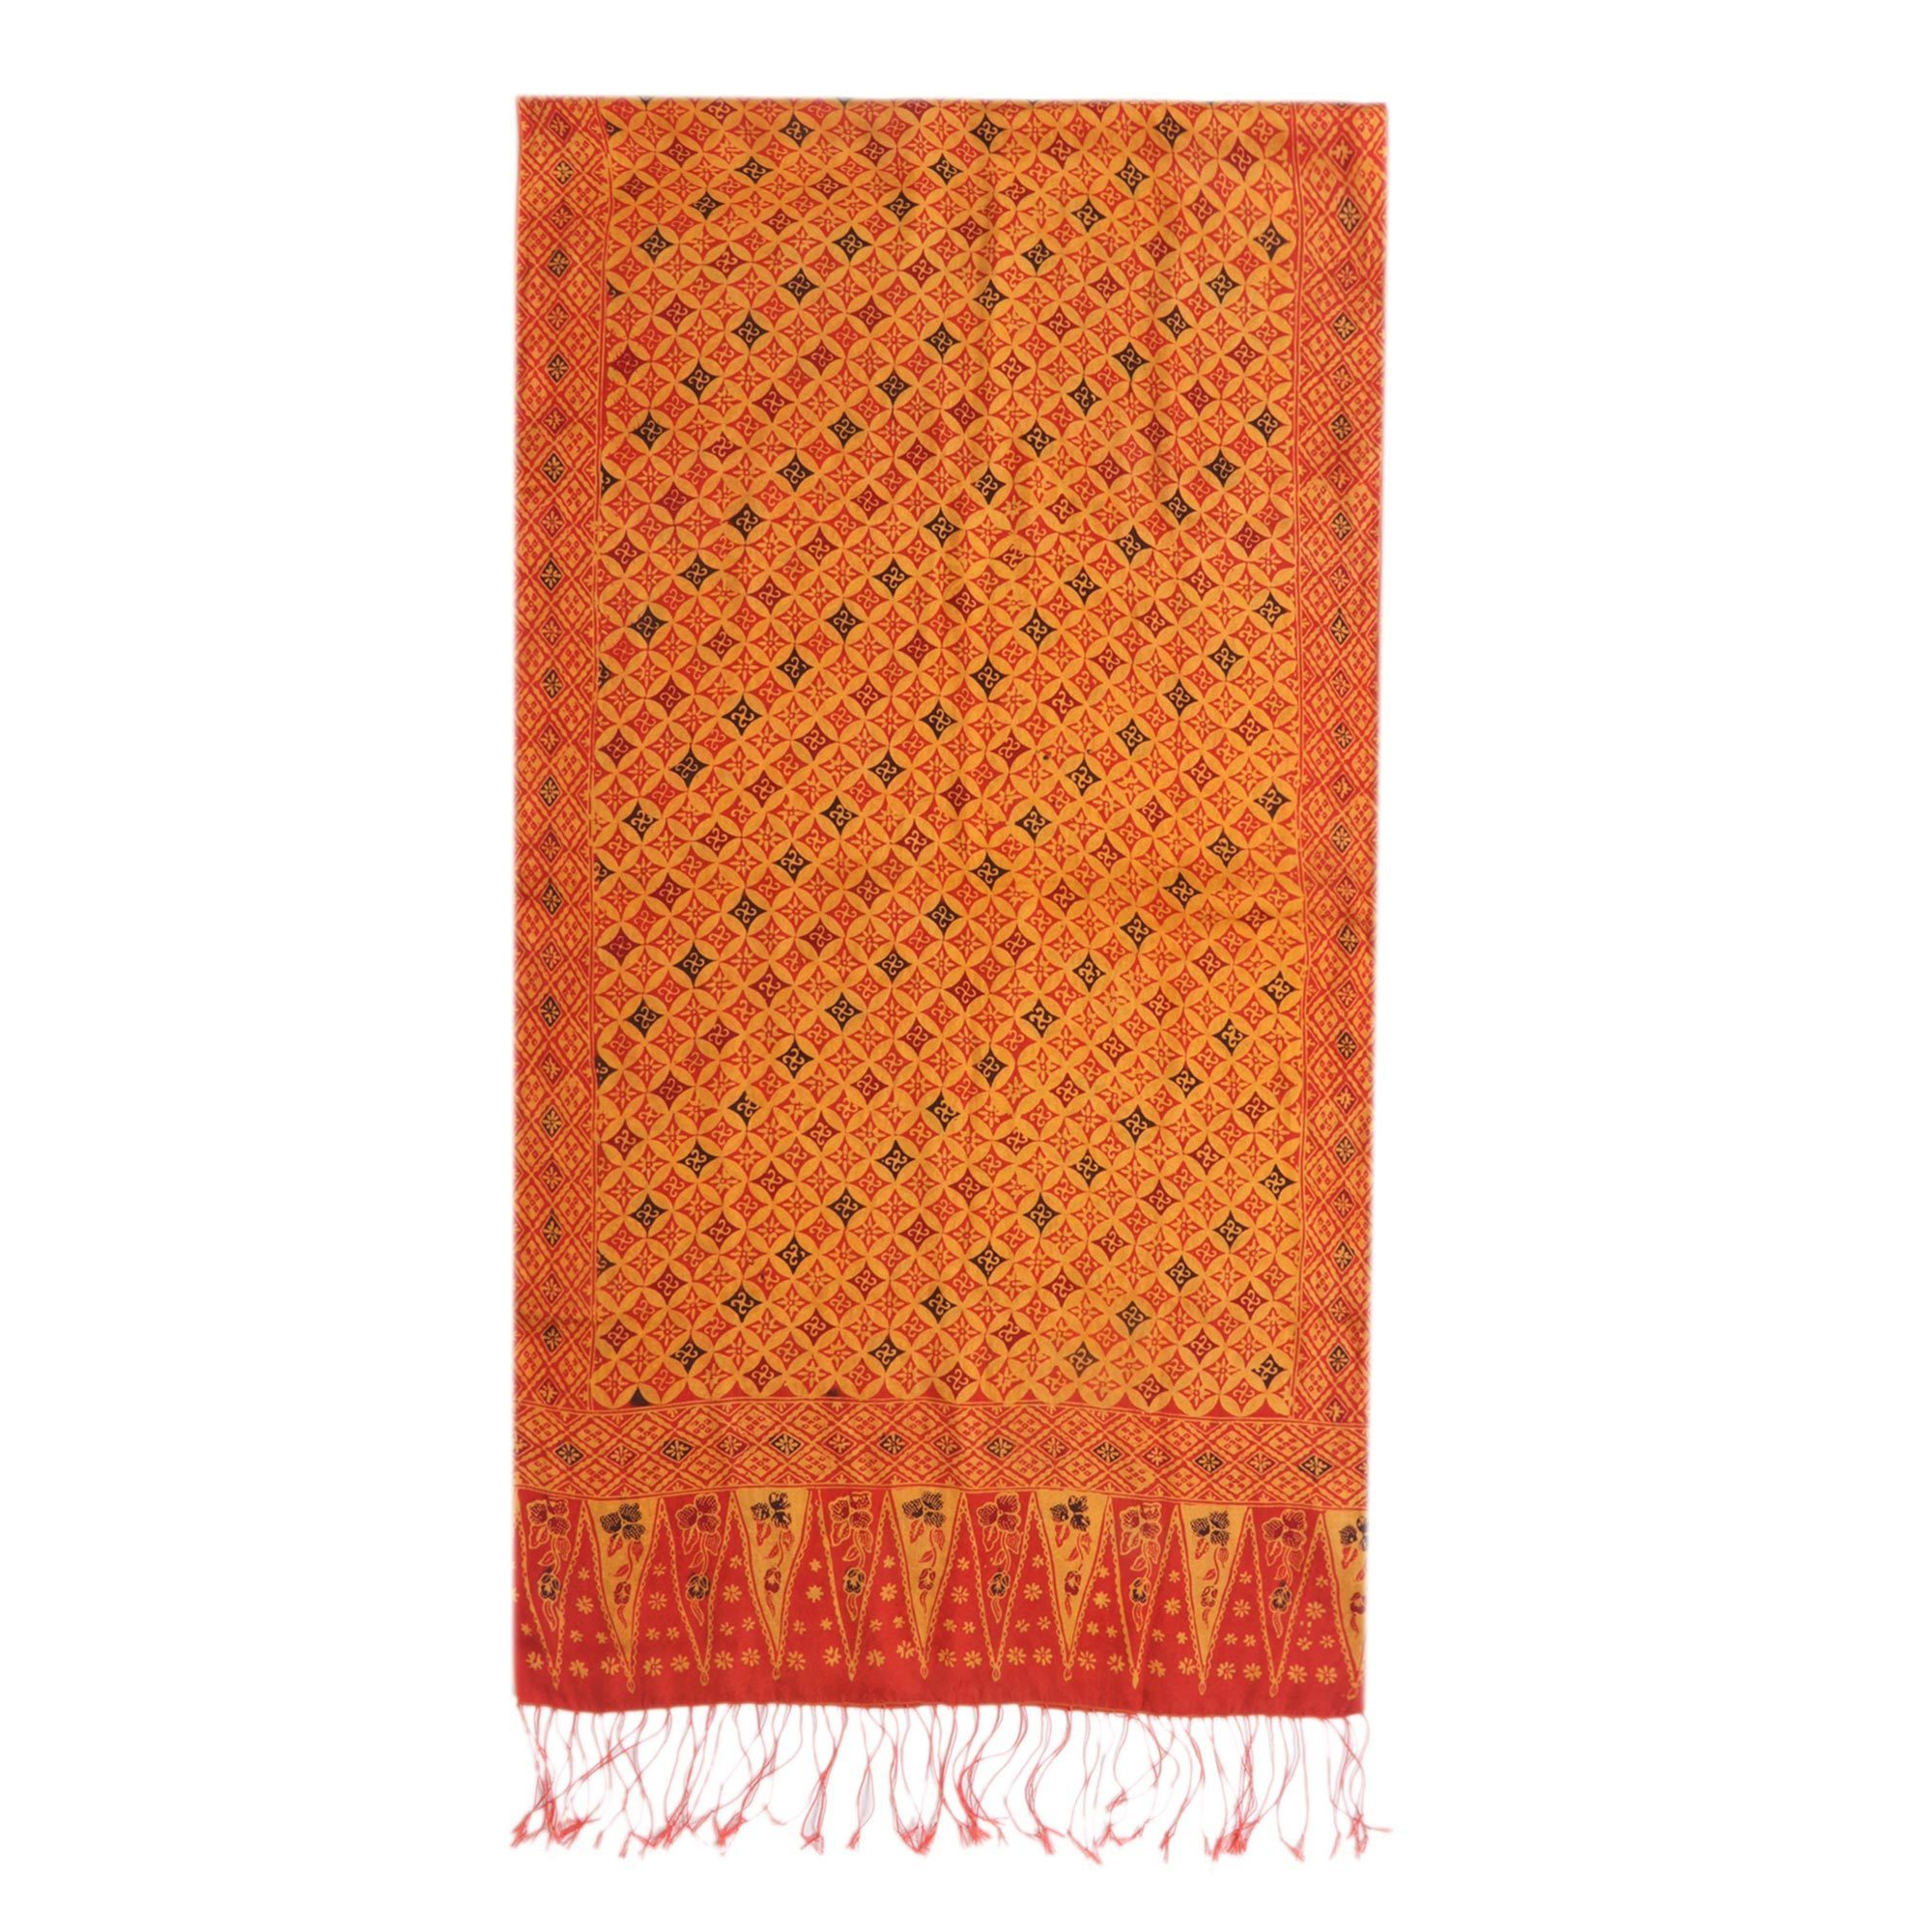 Promo Harga Fbw Sonia Flutted Sleeves Batik Piring Dress Red Orange Popustores Square Kawung Resort Shirt Mustard M Shop Handmade Silk Dimensions Of Shawl Indonesia On